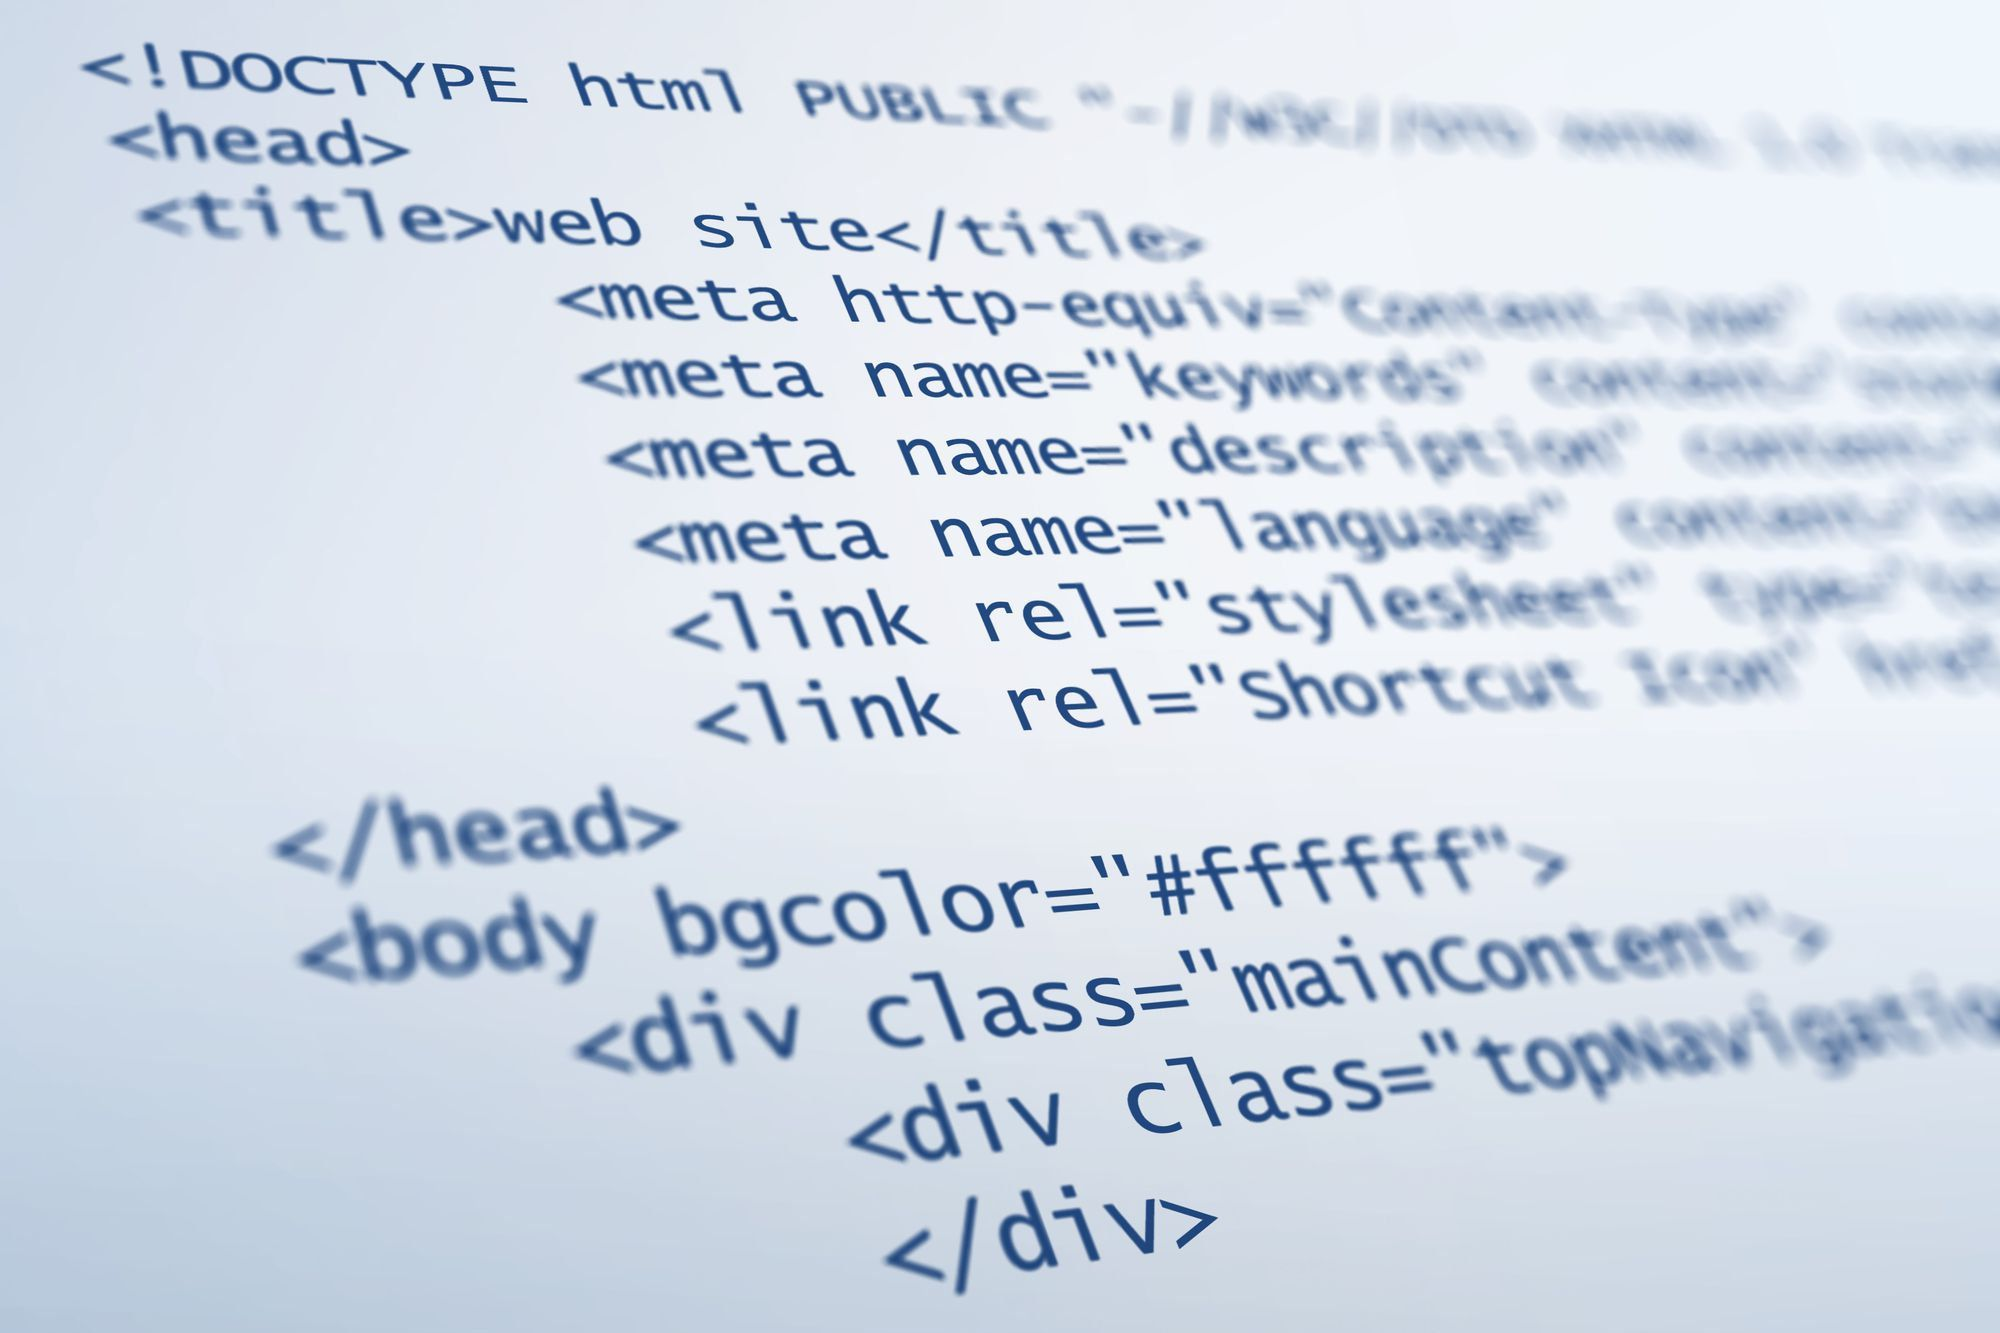 What Is the HEAD Element in an HTML Web Page?